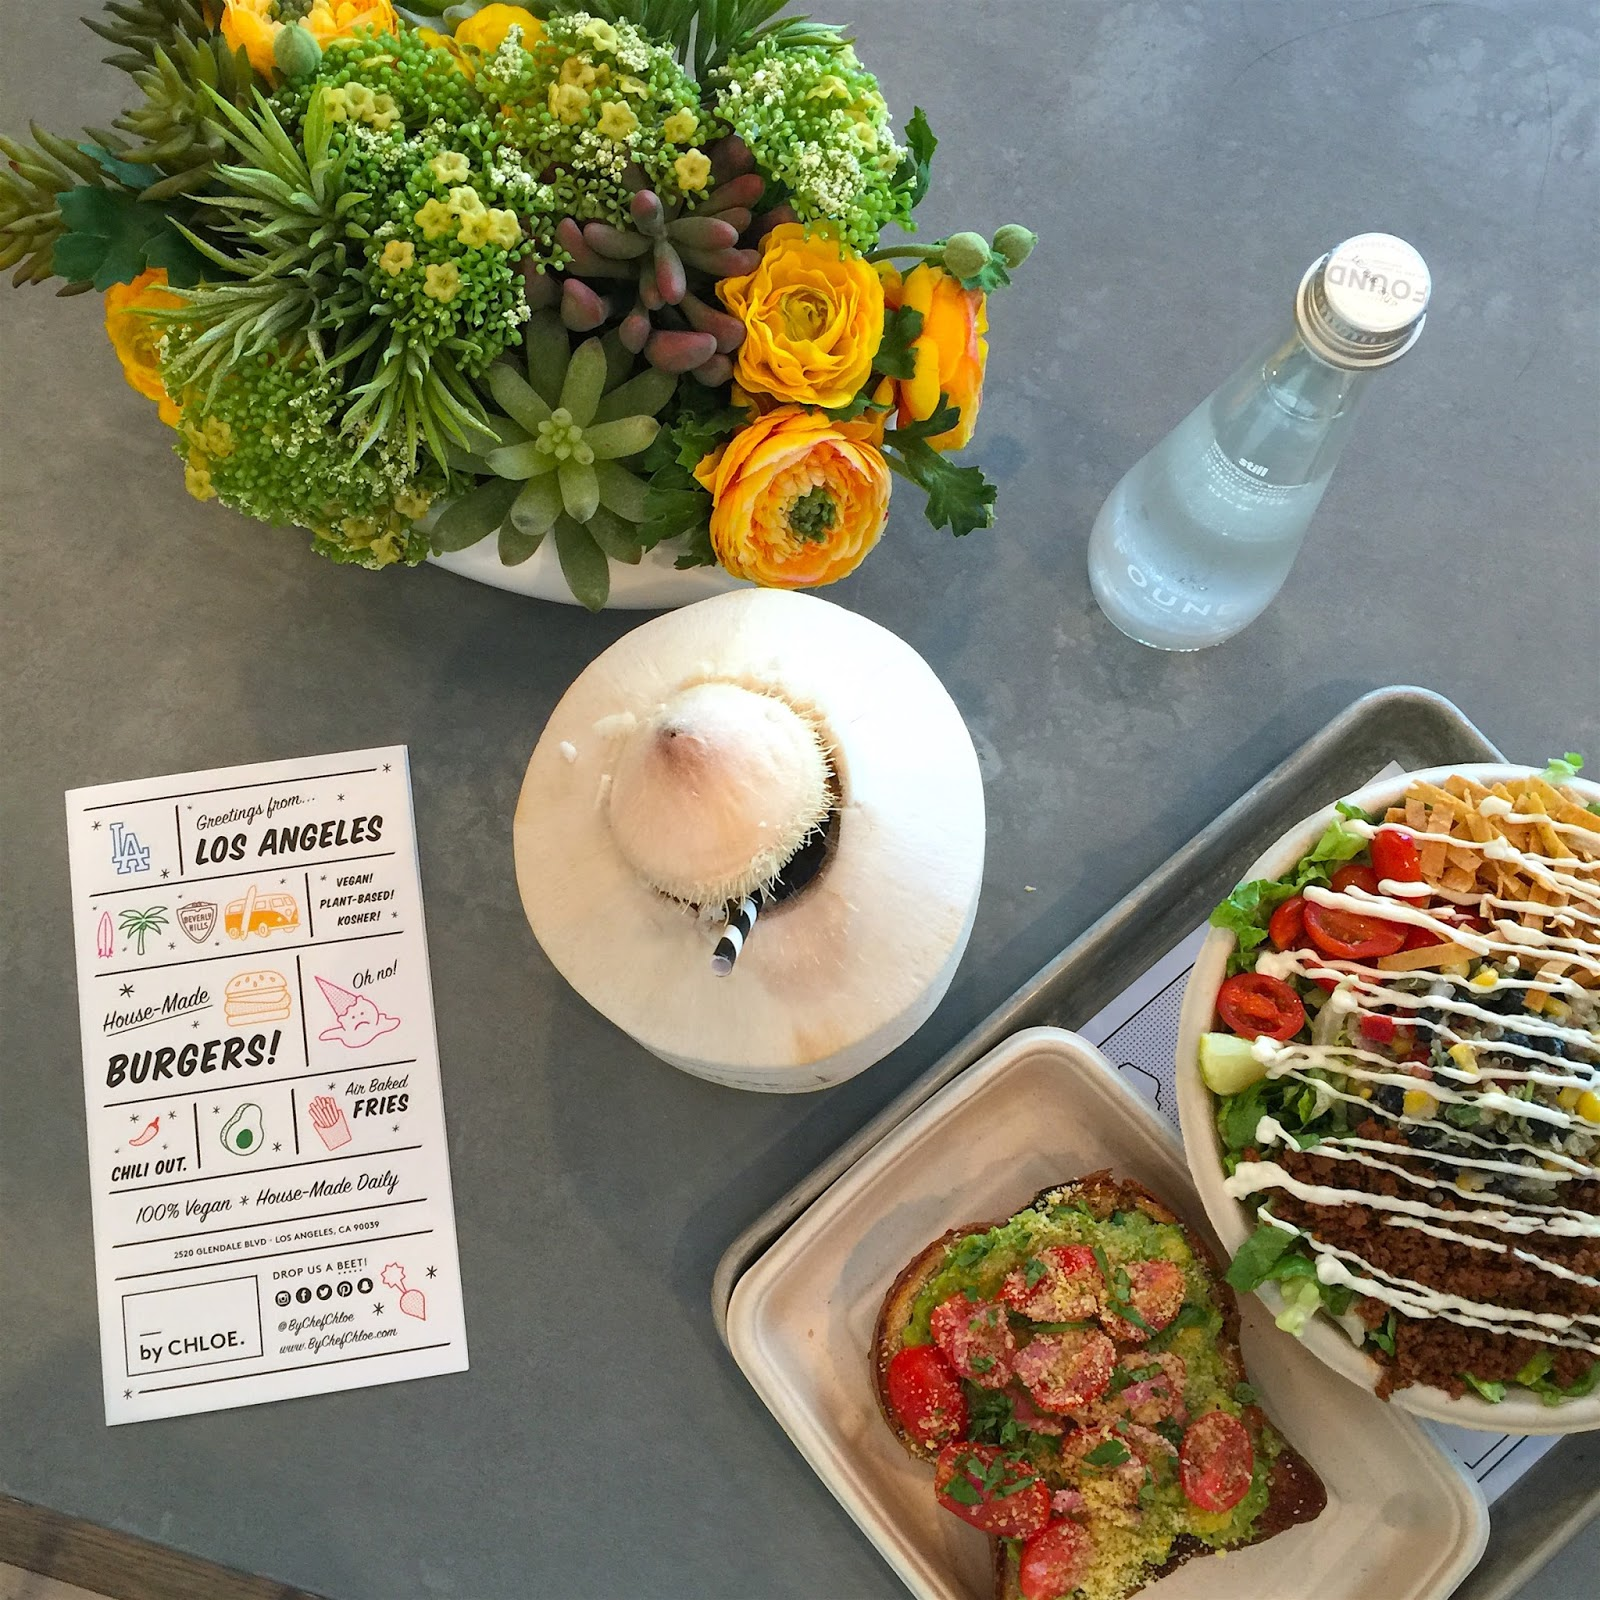 By Chef Chloe Los Angeles/Silverlake, Avocado Toast, Avocado Burger, Quinoa Taco Salad, Coconut Drink